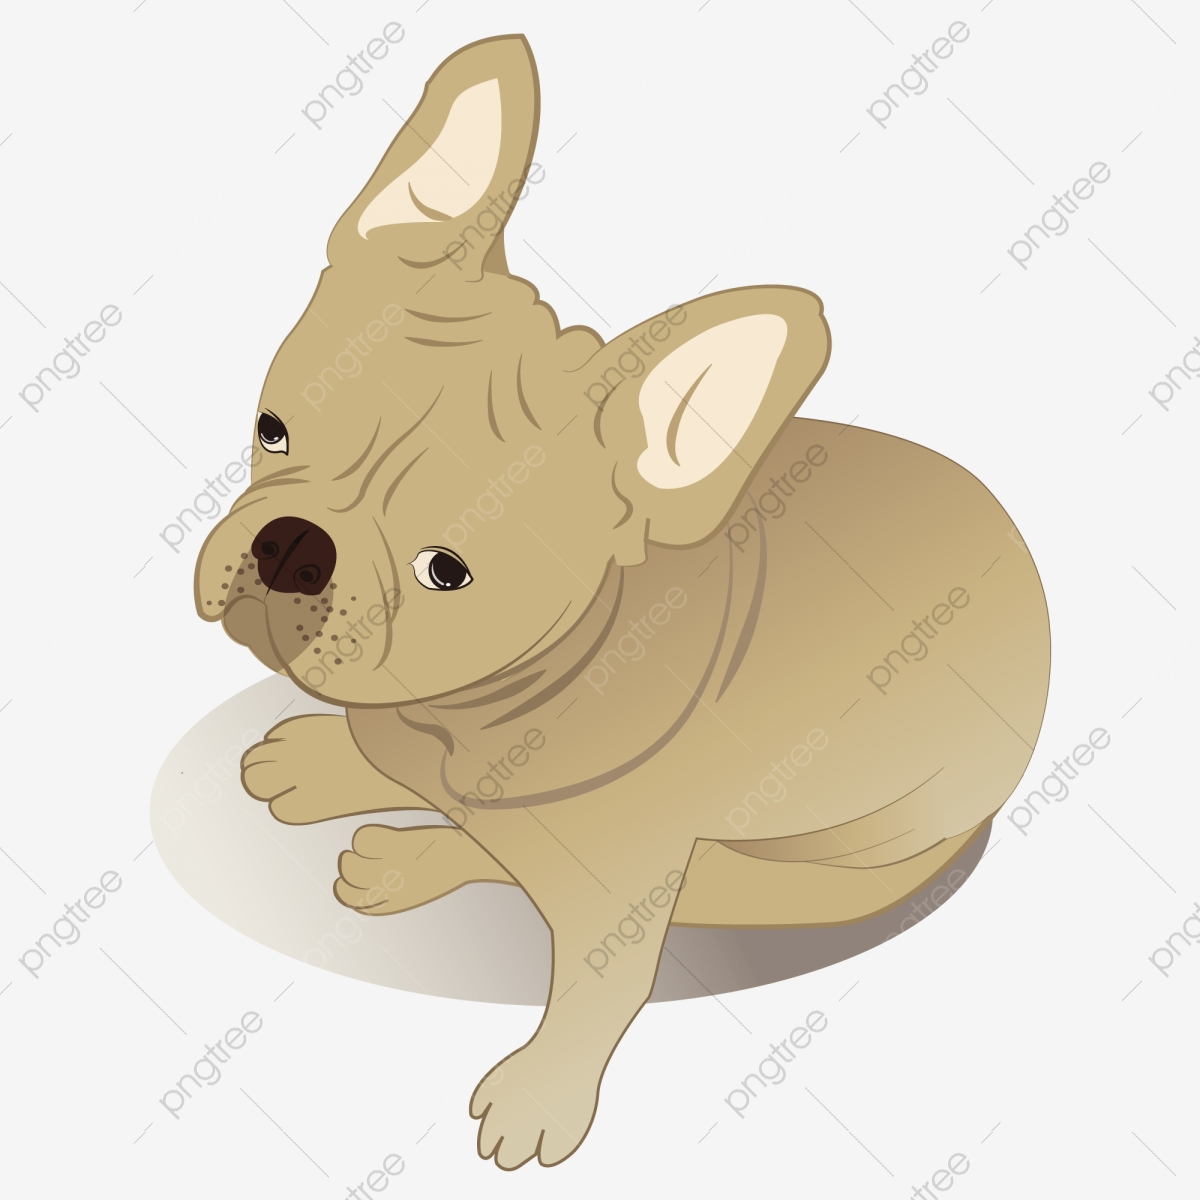 Angry Dog, Angry Clipart, Dog Clipart, Shiba Inu PNG Transparent.